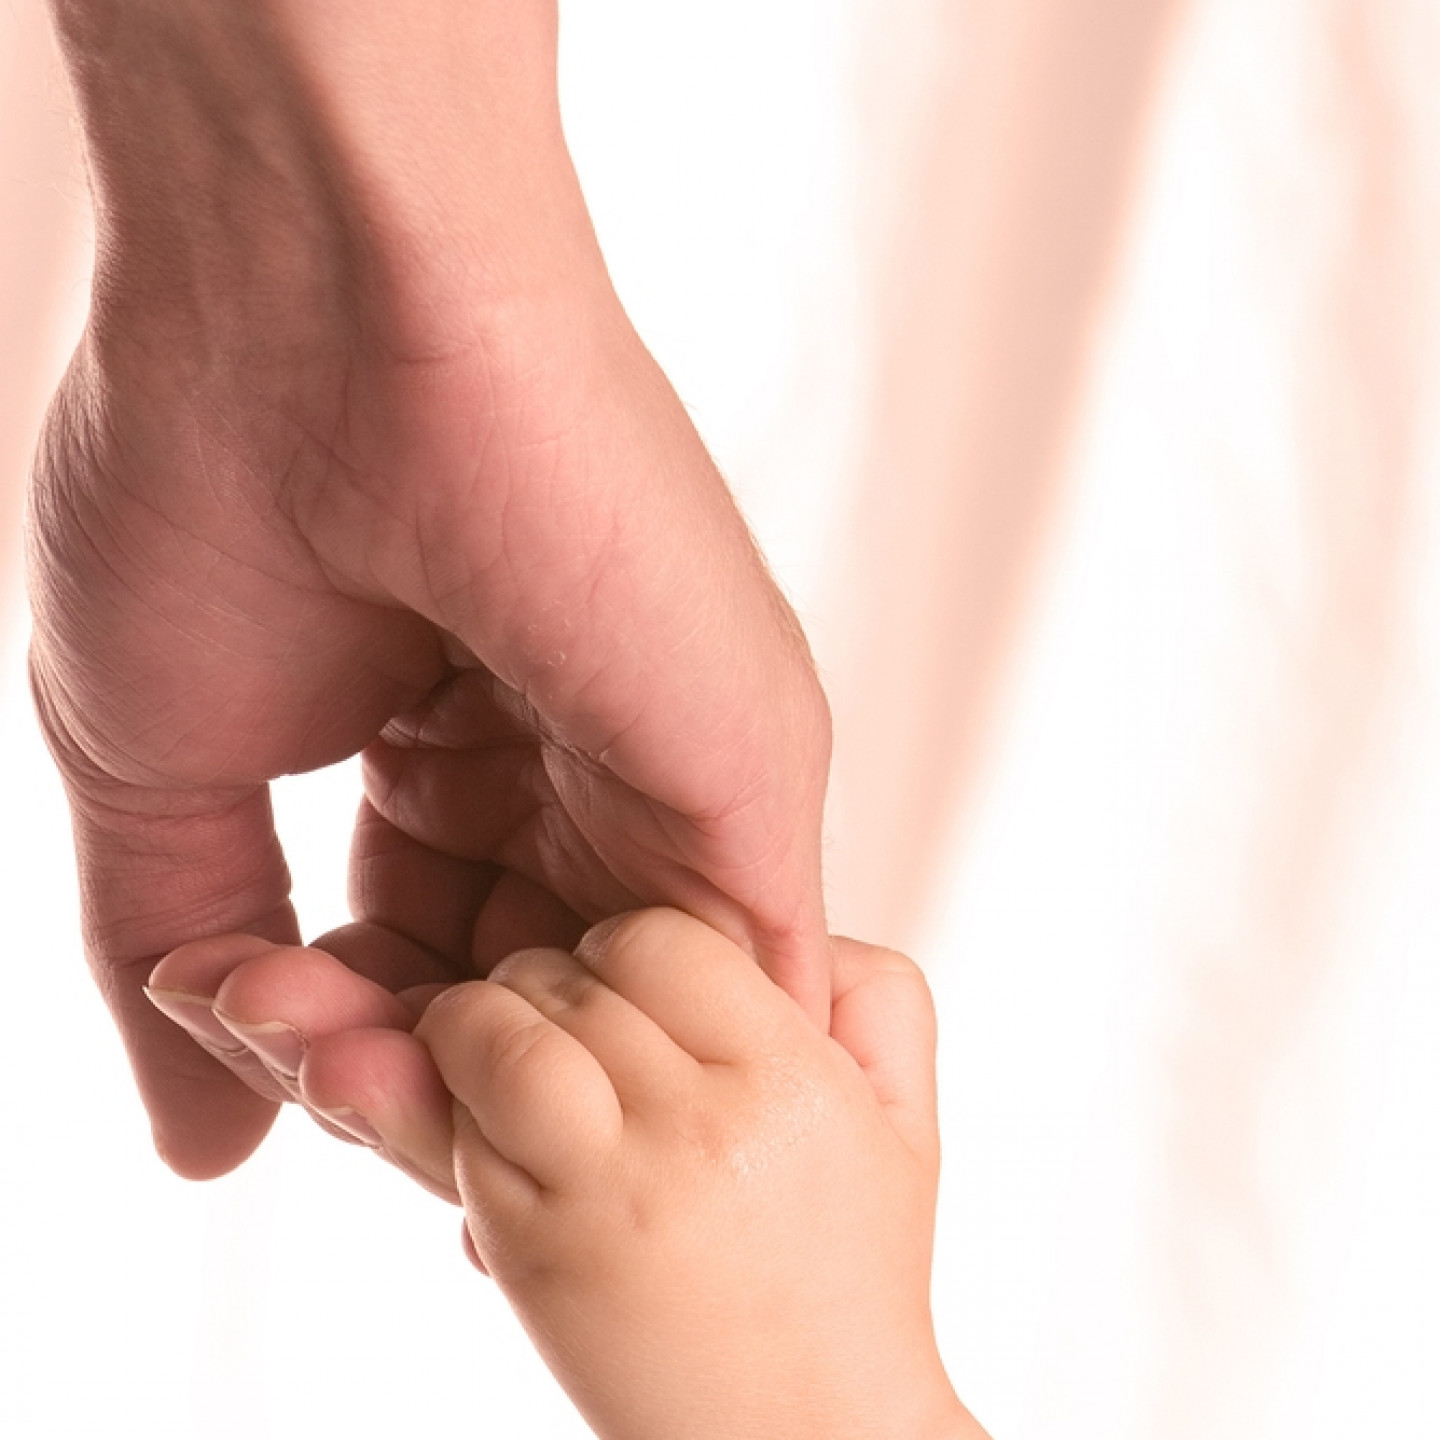 NEED TO SPEAK WITH A CHILD CUSTODY ATTORNEY?